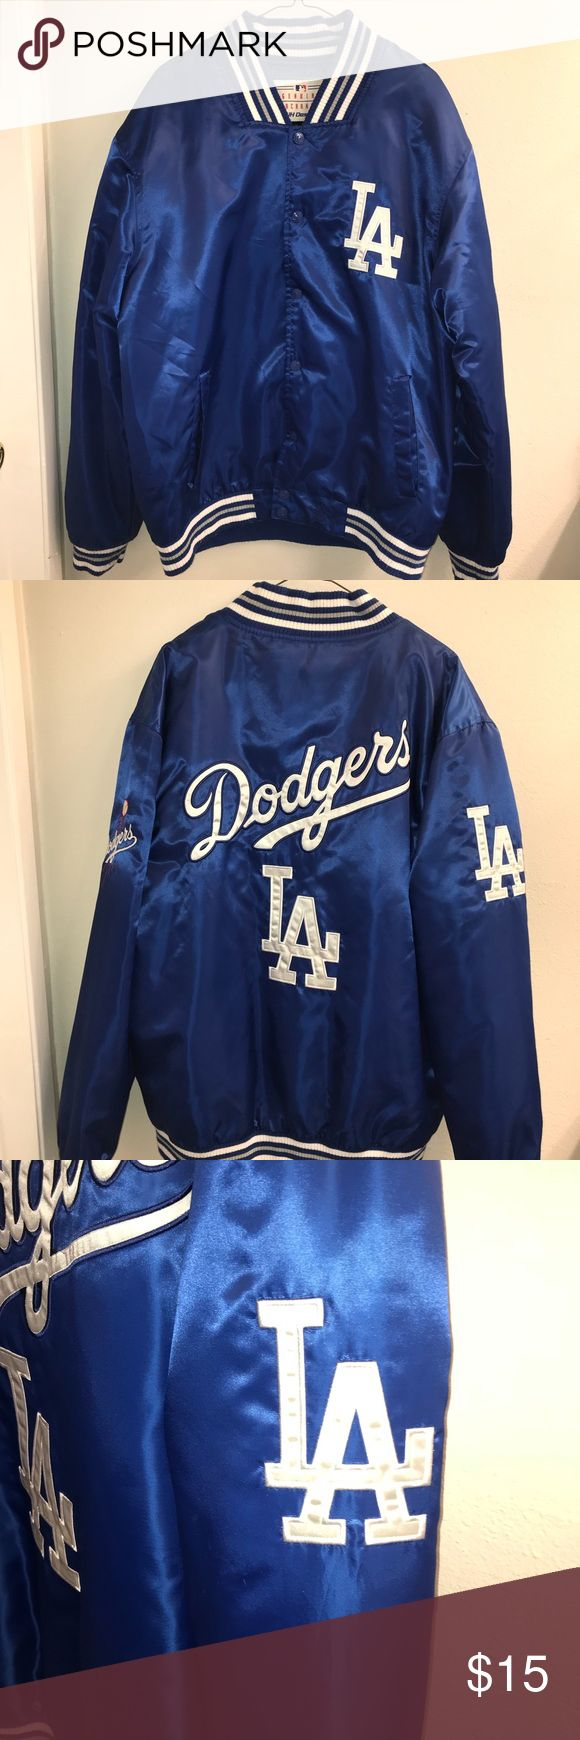 NWOT Dodgers Jacket Give me to my husband but can not wear it Price is firm NWOT  Smoke and pet free home Jackets & Coats Bomber & Varsity